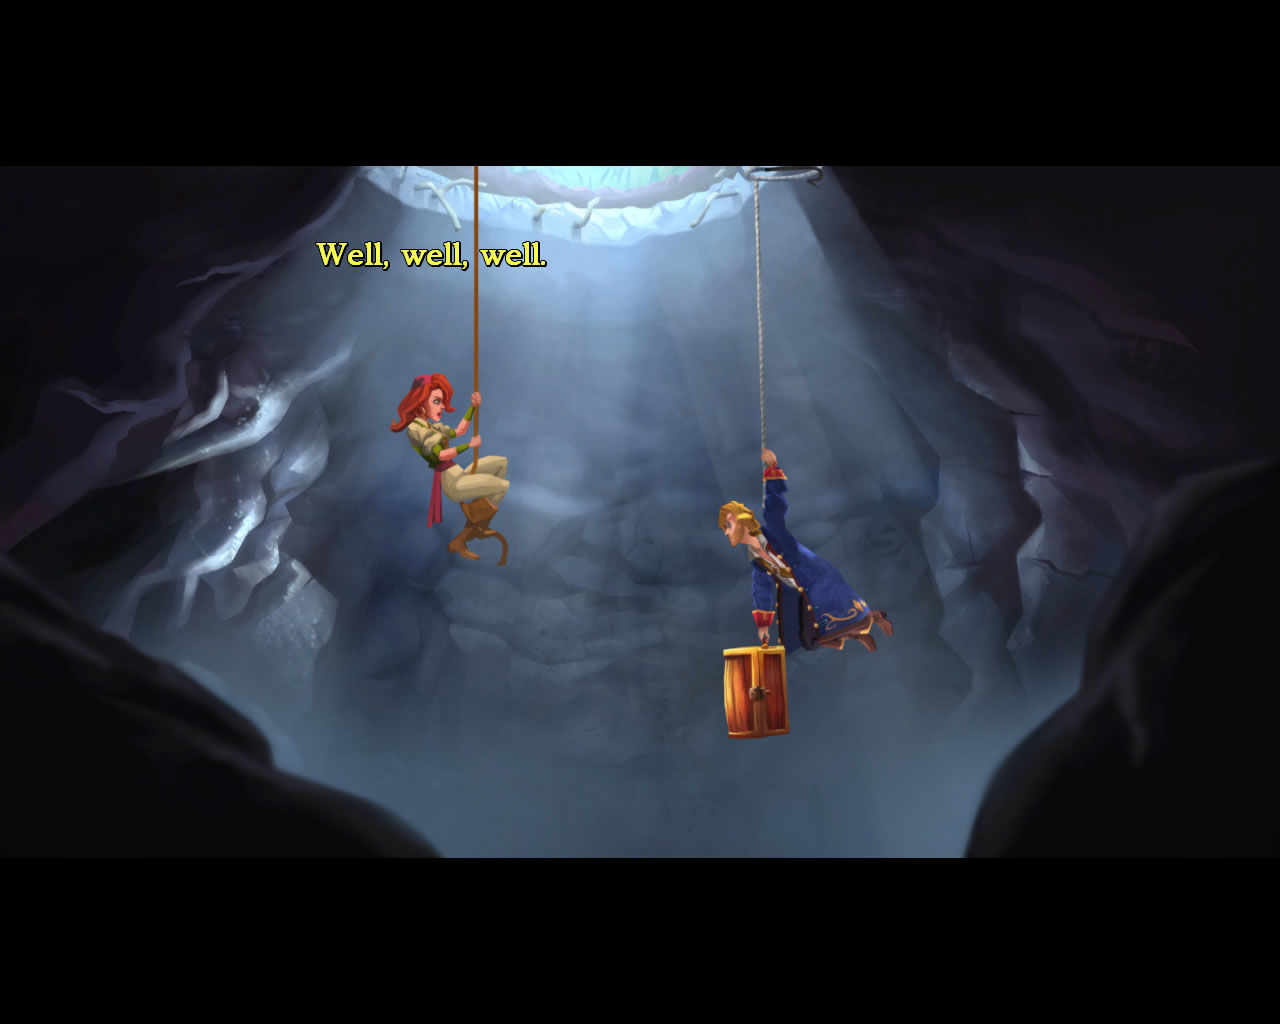 Monkey Island 2: LeChuck's Revenge - Special Edition Windows The intro sequence